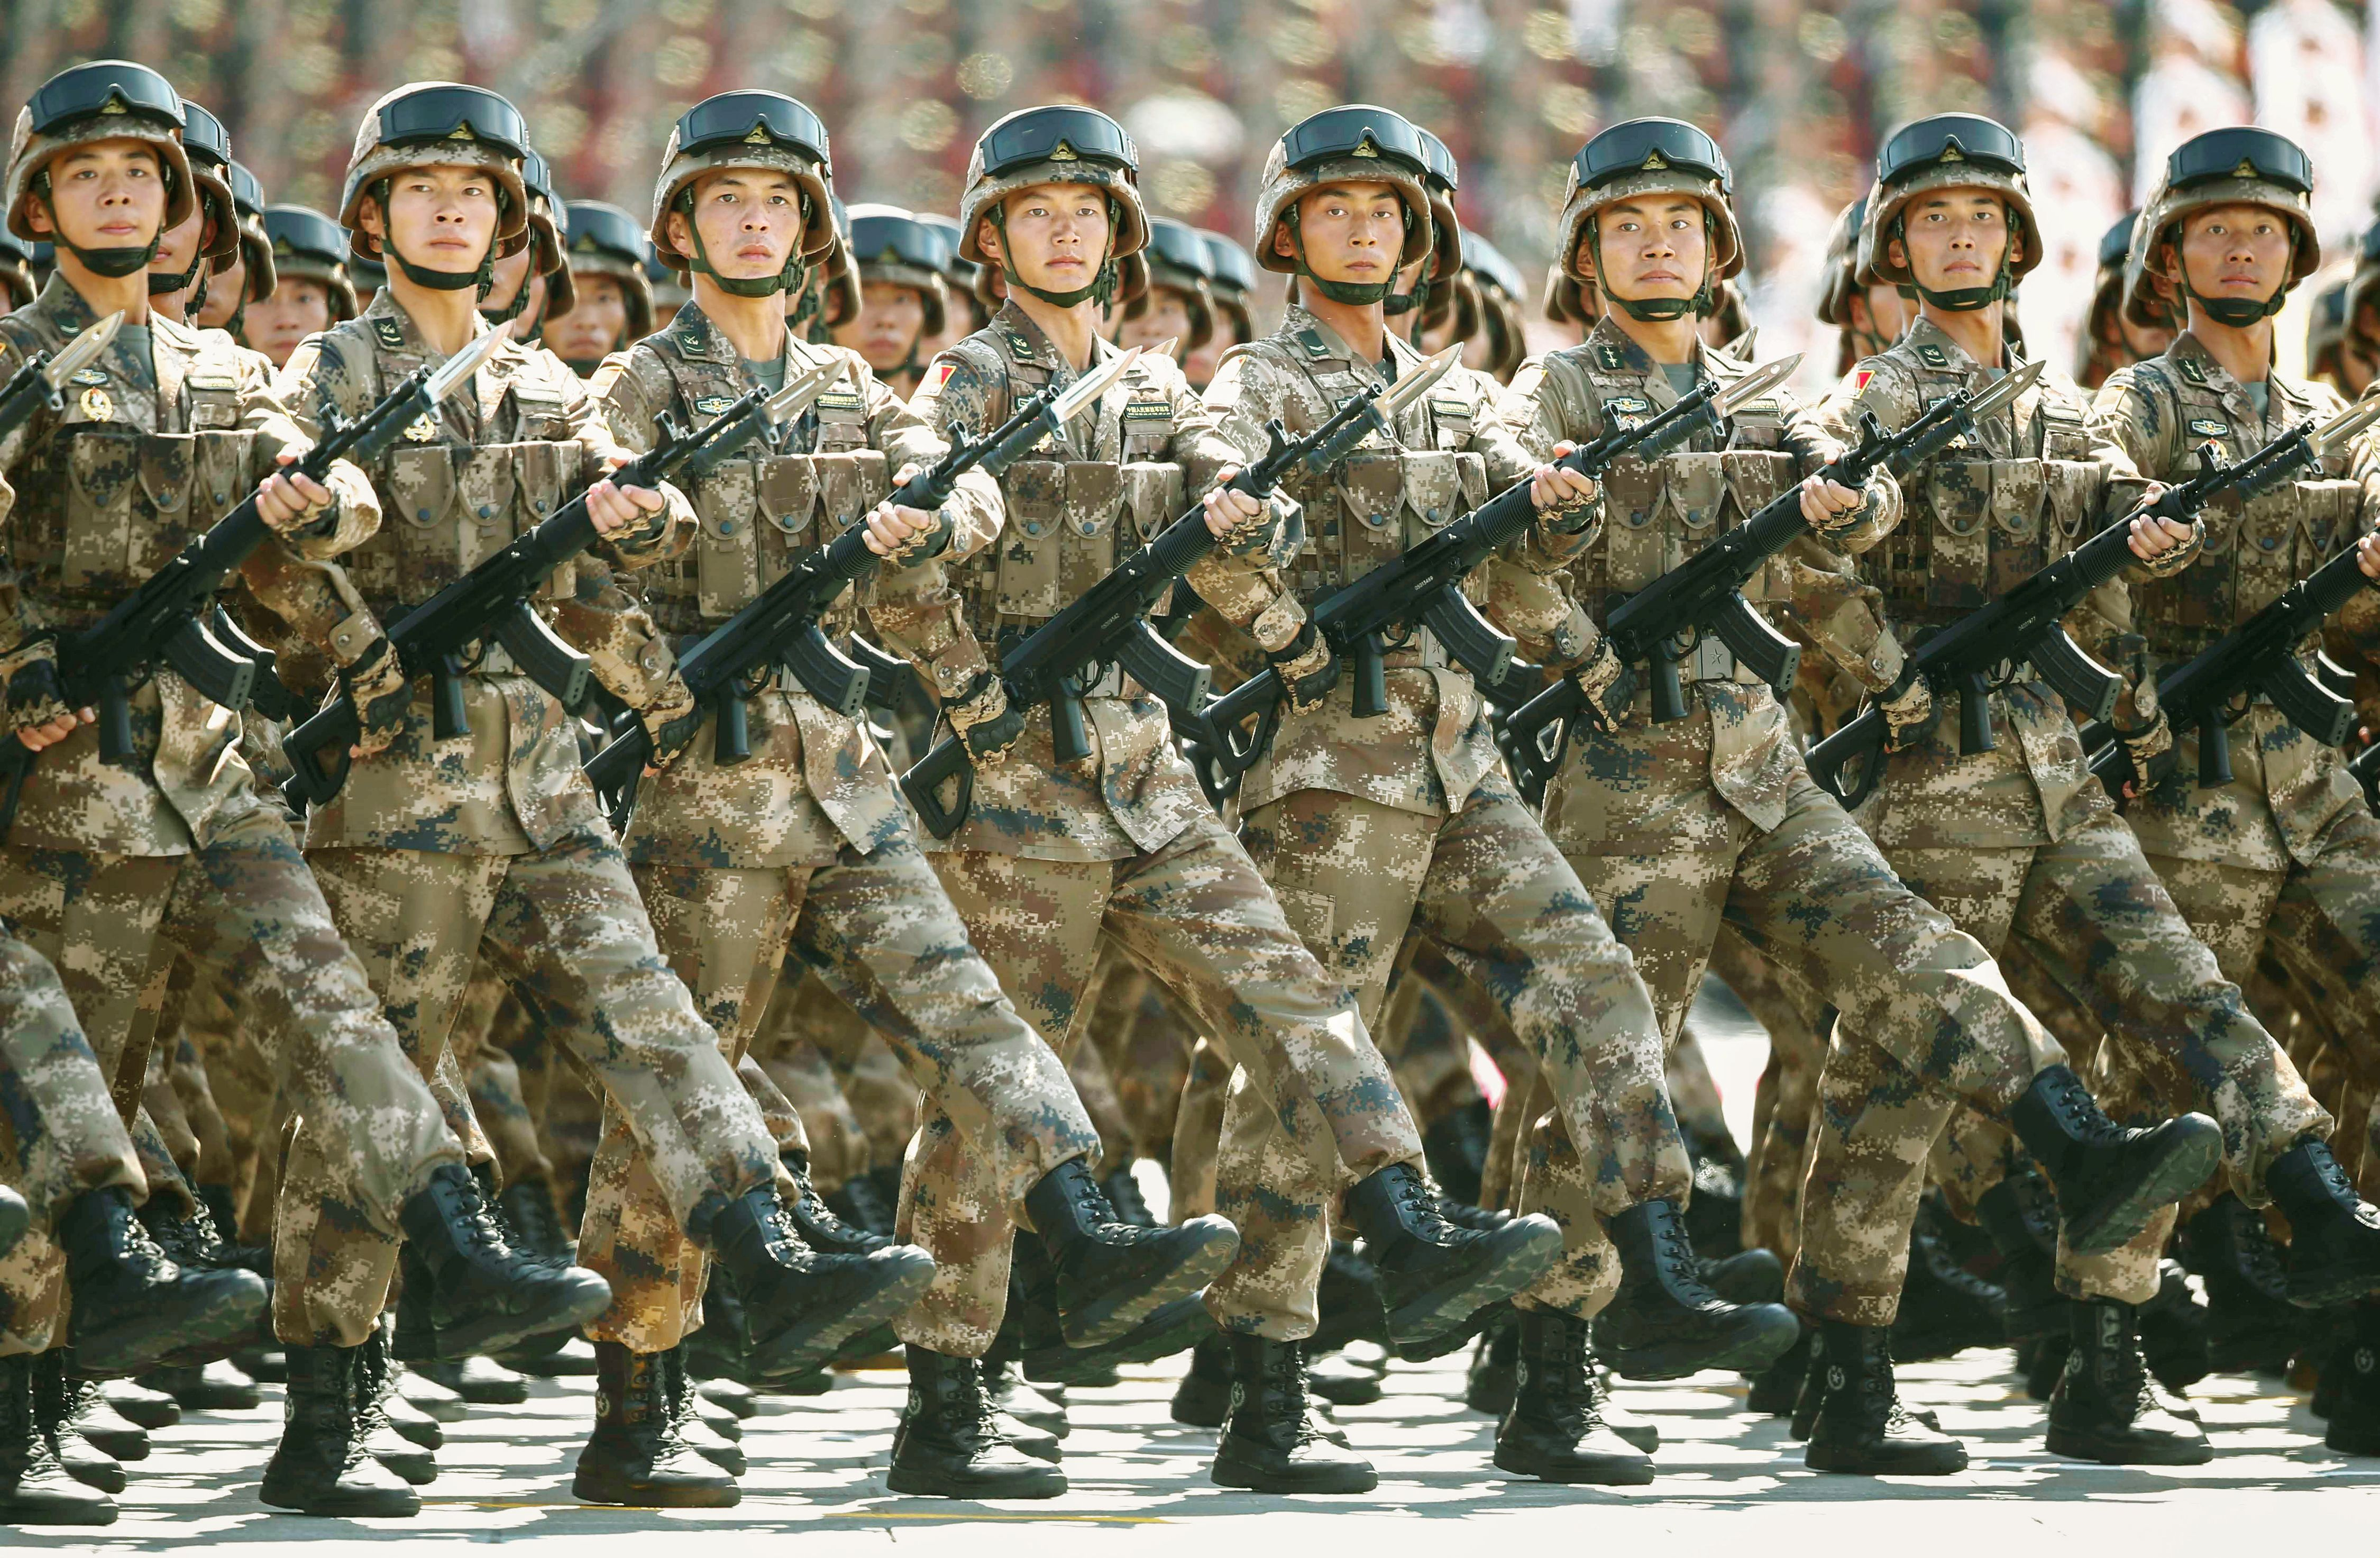 China's rising military threat: Why India should worry